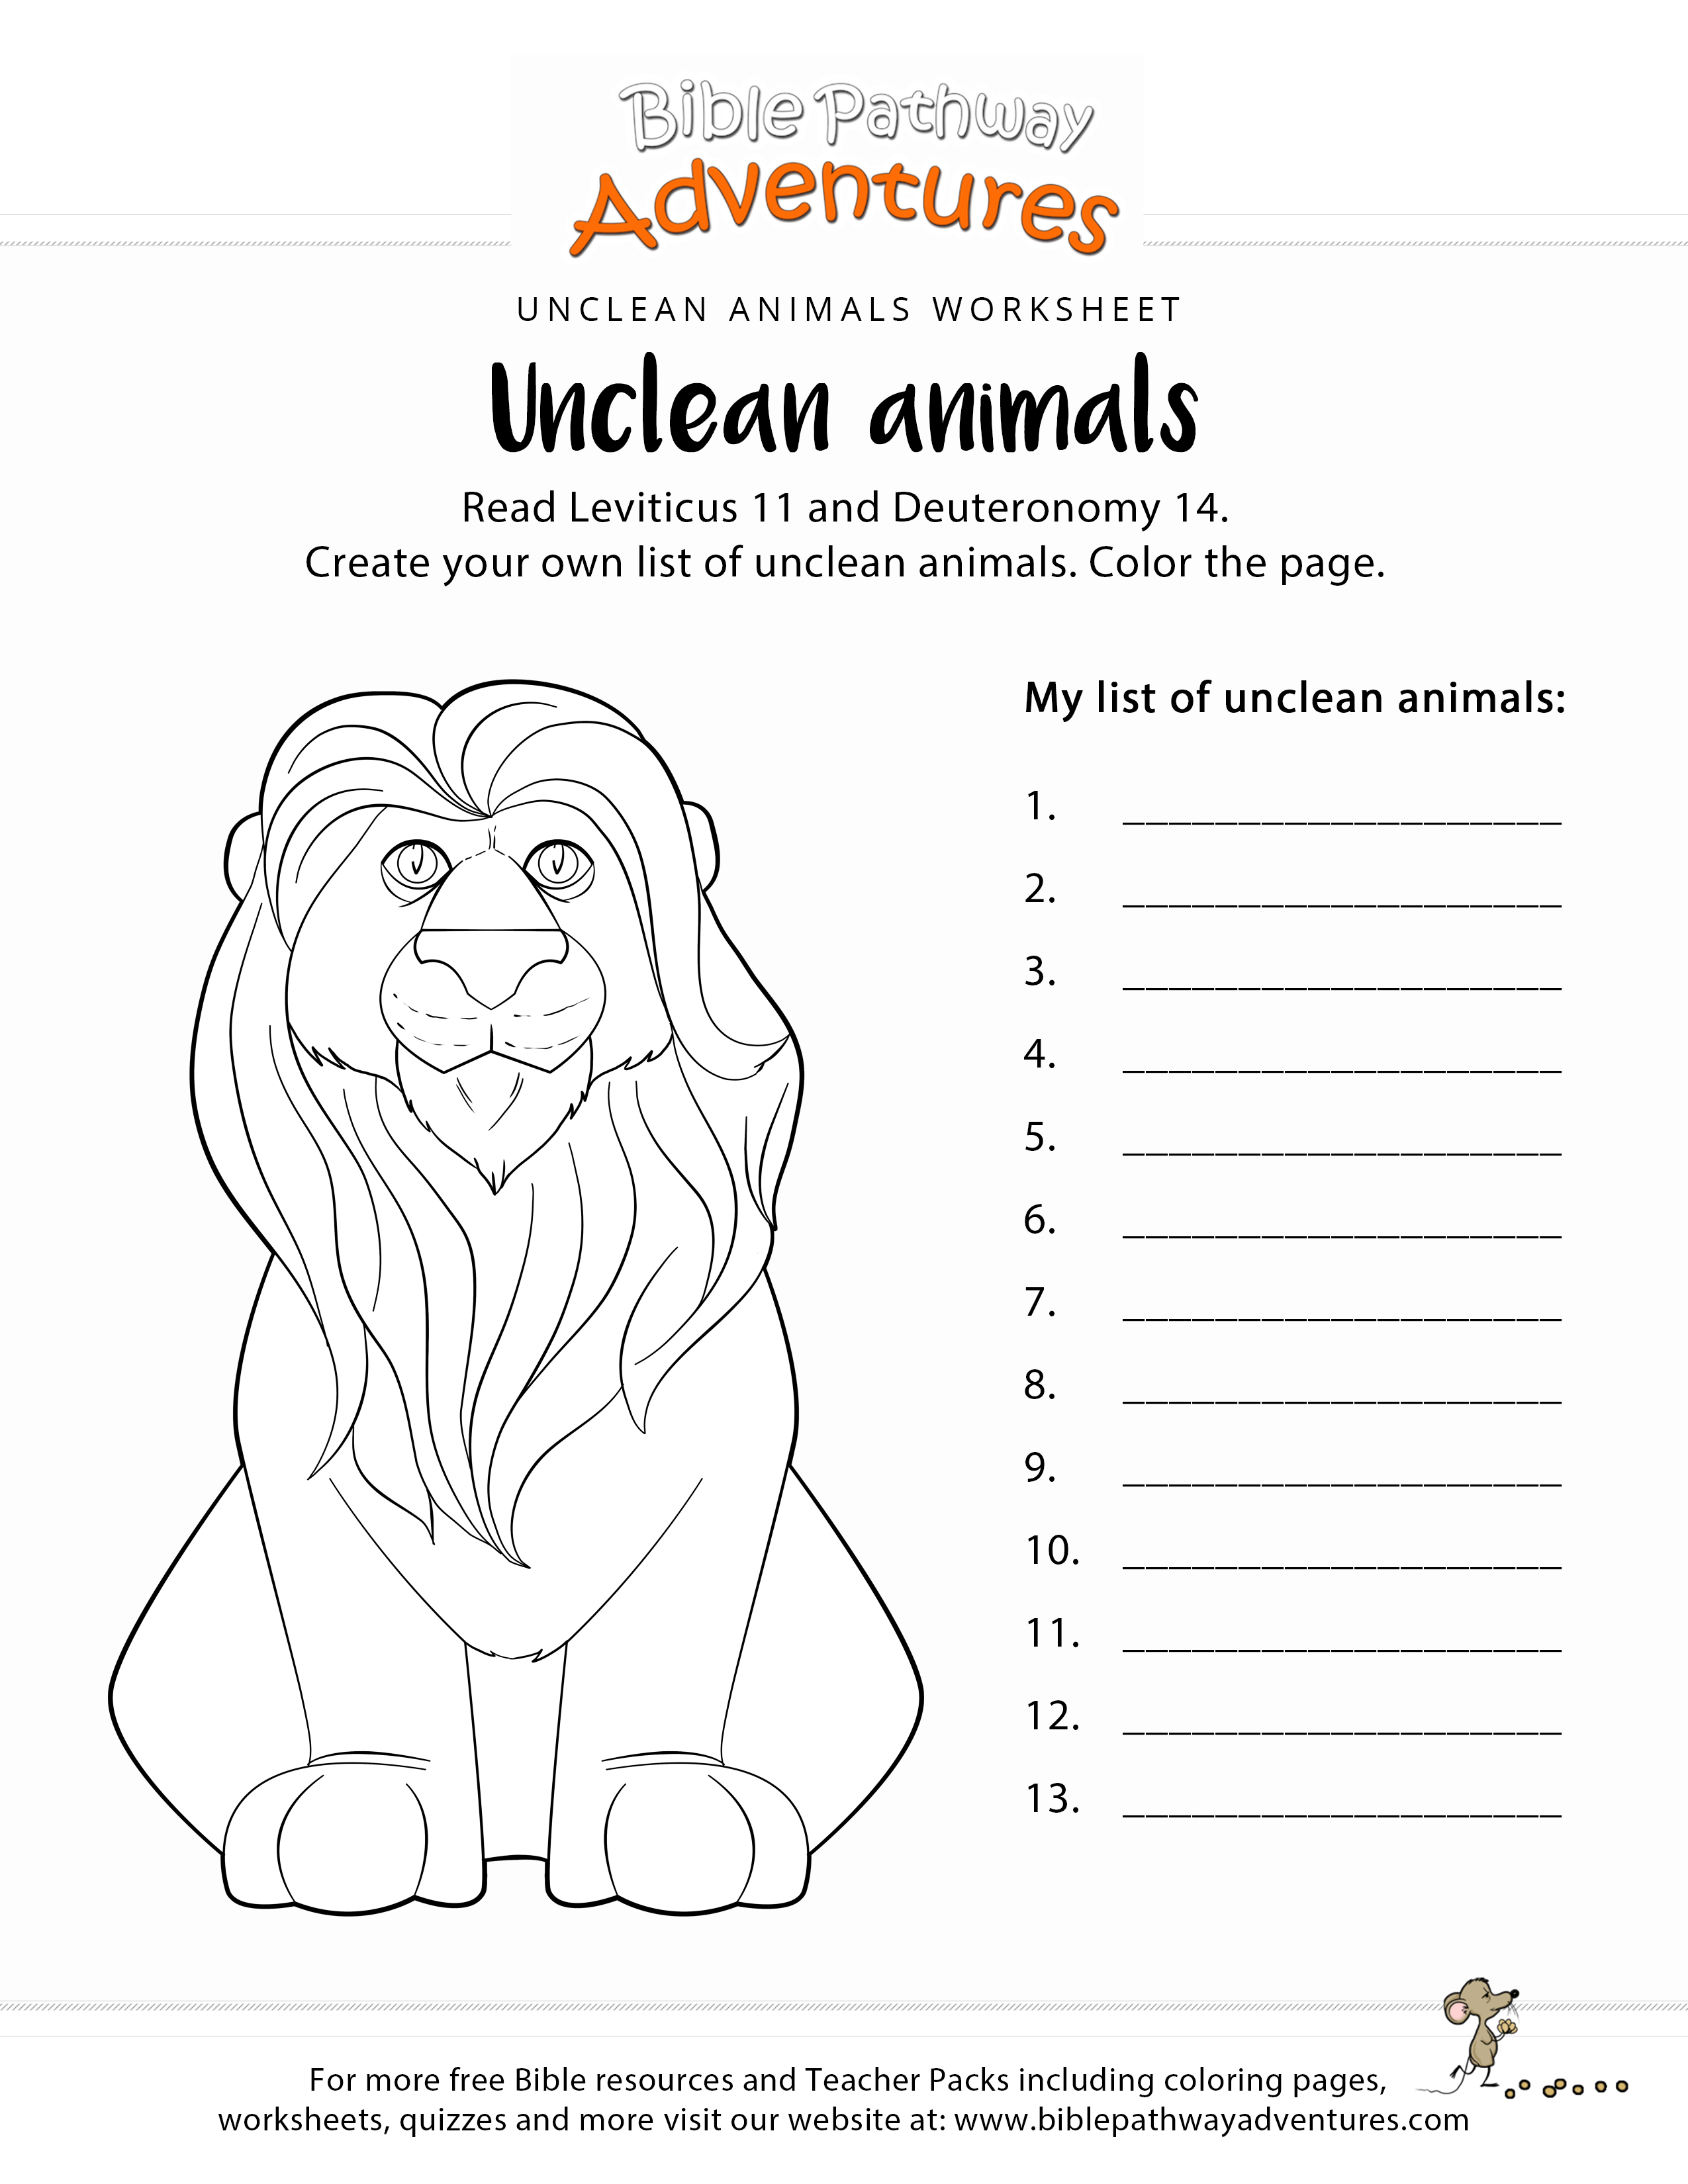 Unclean Animals Worksheet Coloring Page Printable Bible Activities Bible Coloring Pages Bible Activities